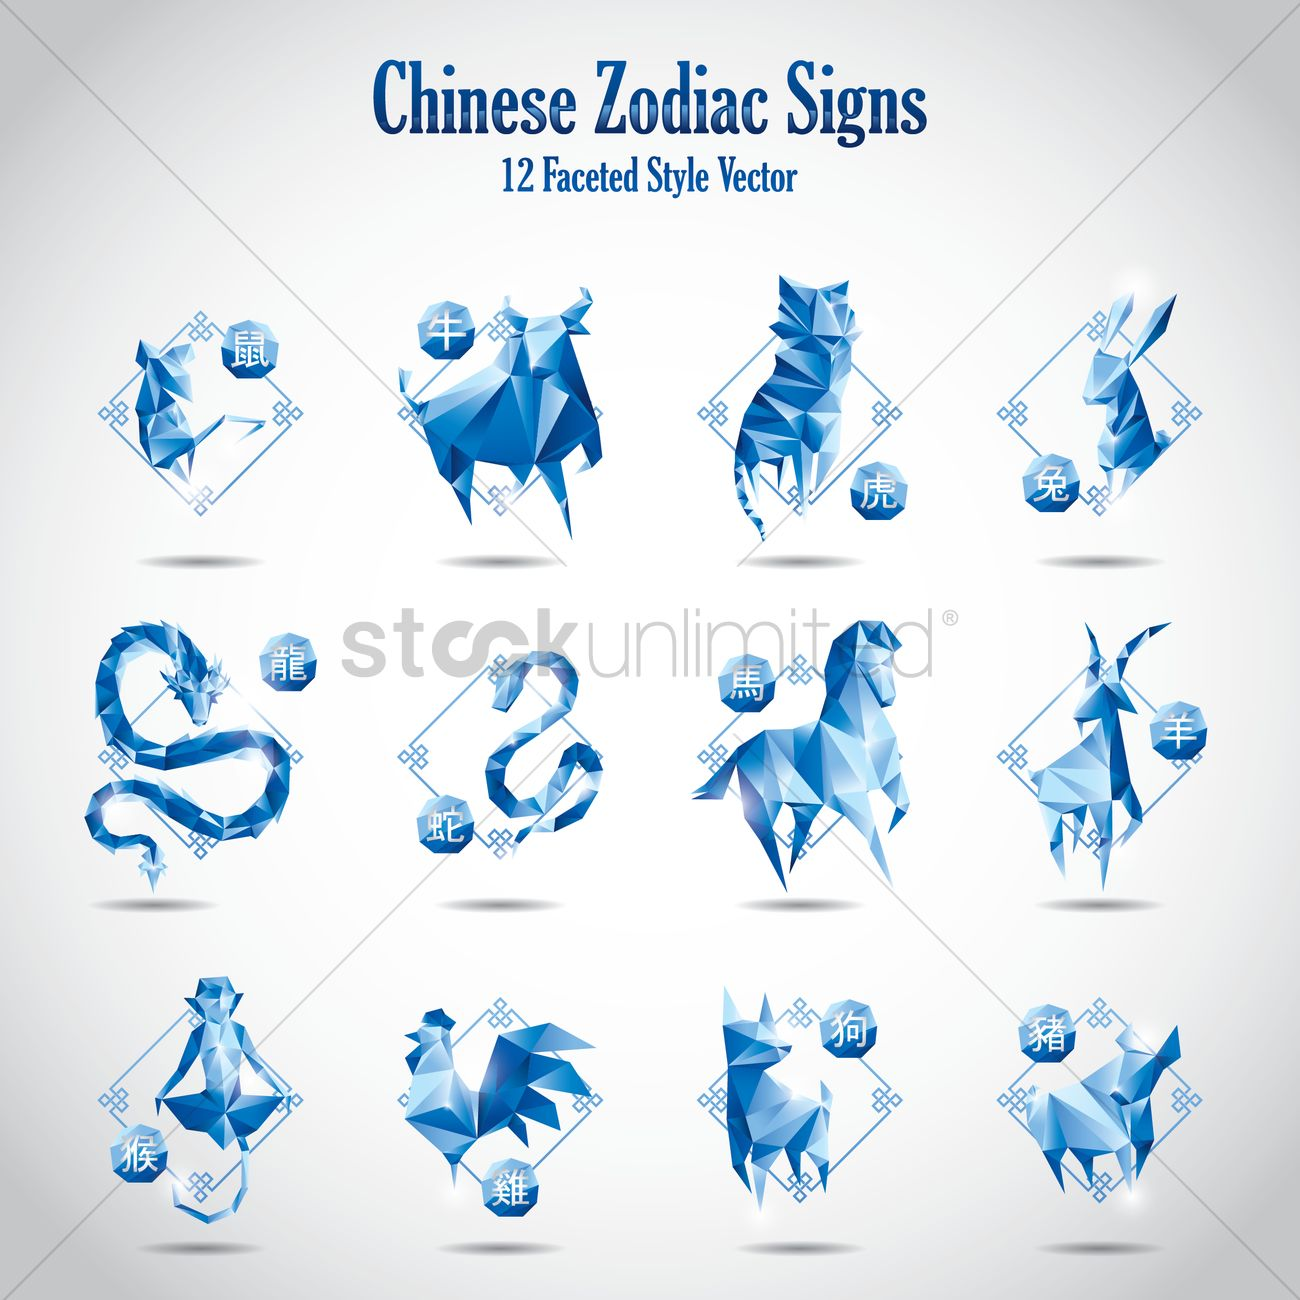 Chinese Zodiac Signs Vector Image 1323238 Stockunlimited